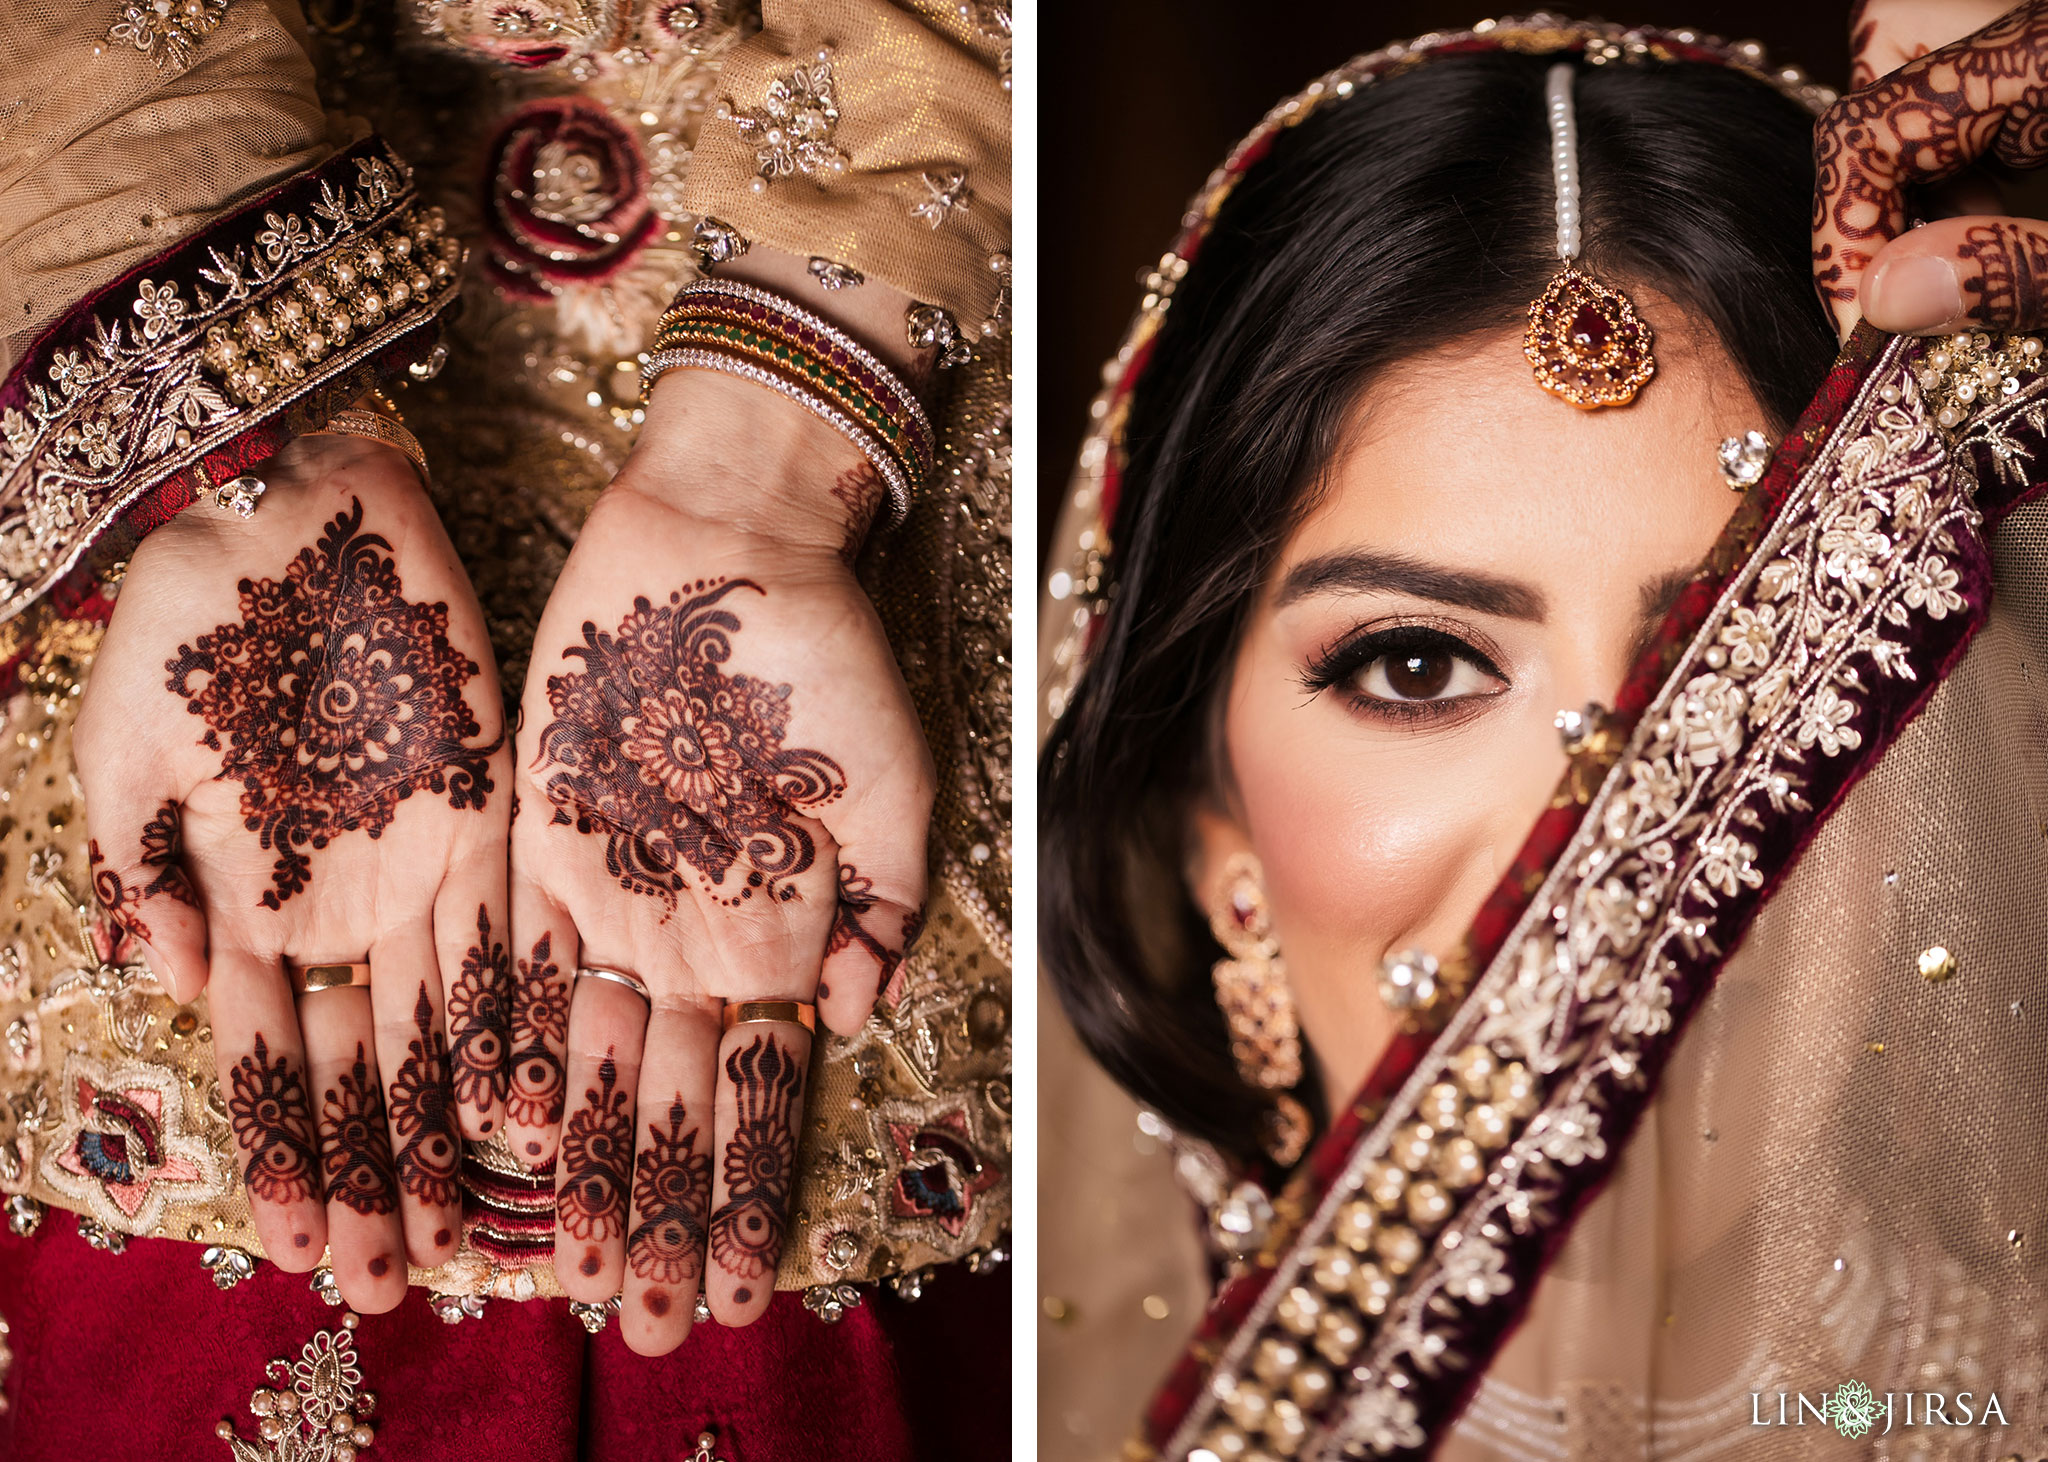 005 four seasons westlake village pakistani wedding photography